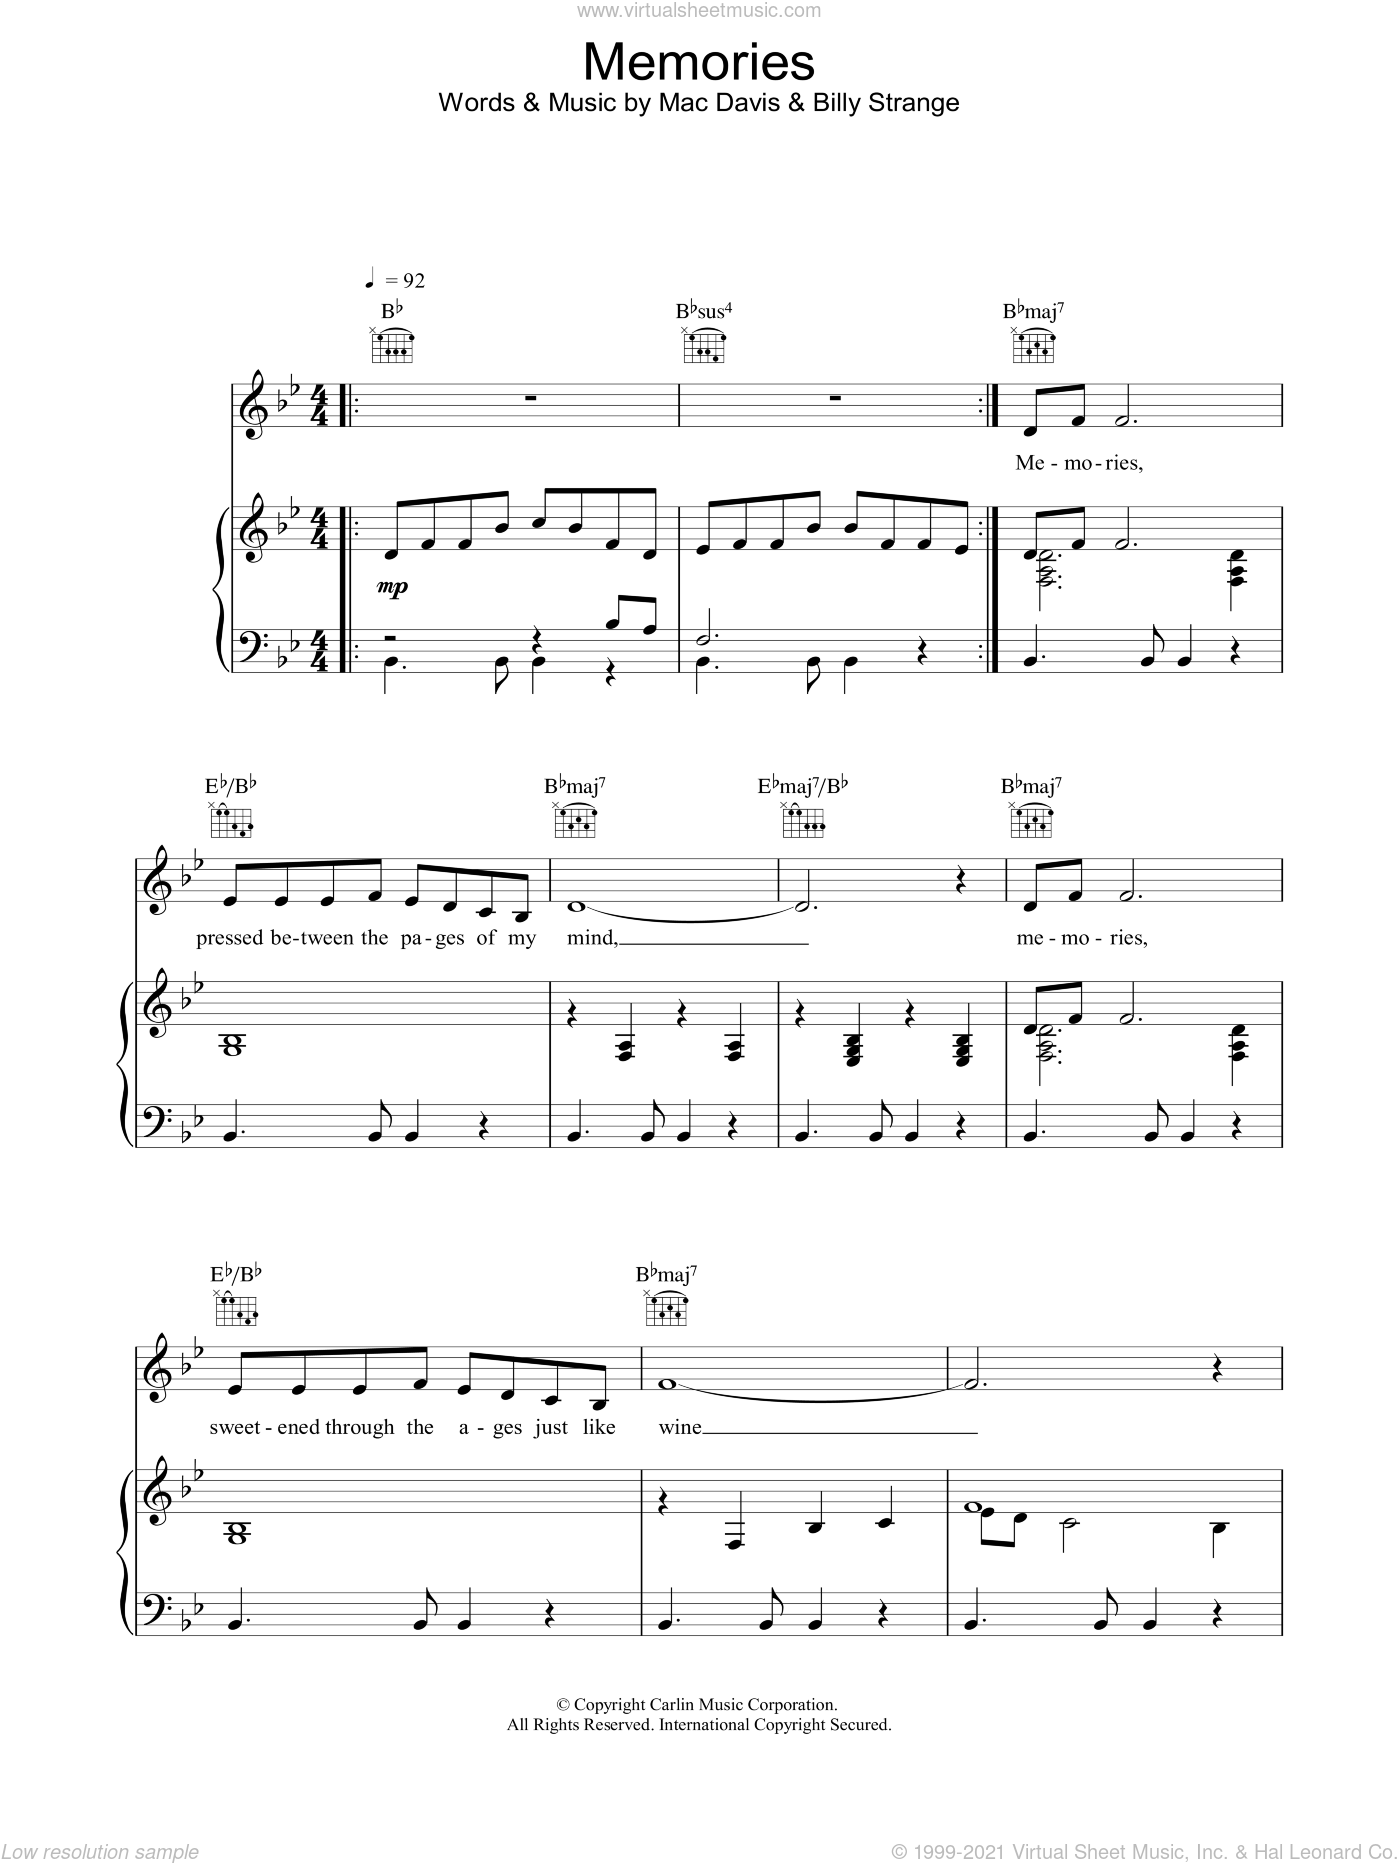 Memories sheet music for voice, piano or guitar by Mac Davis